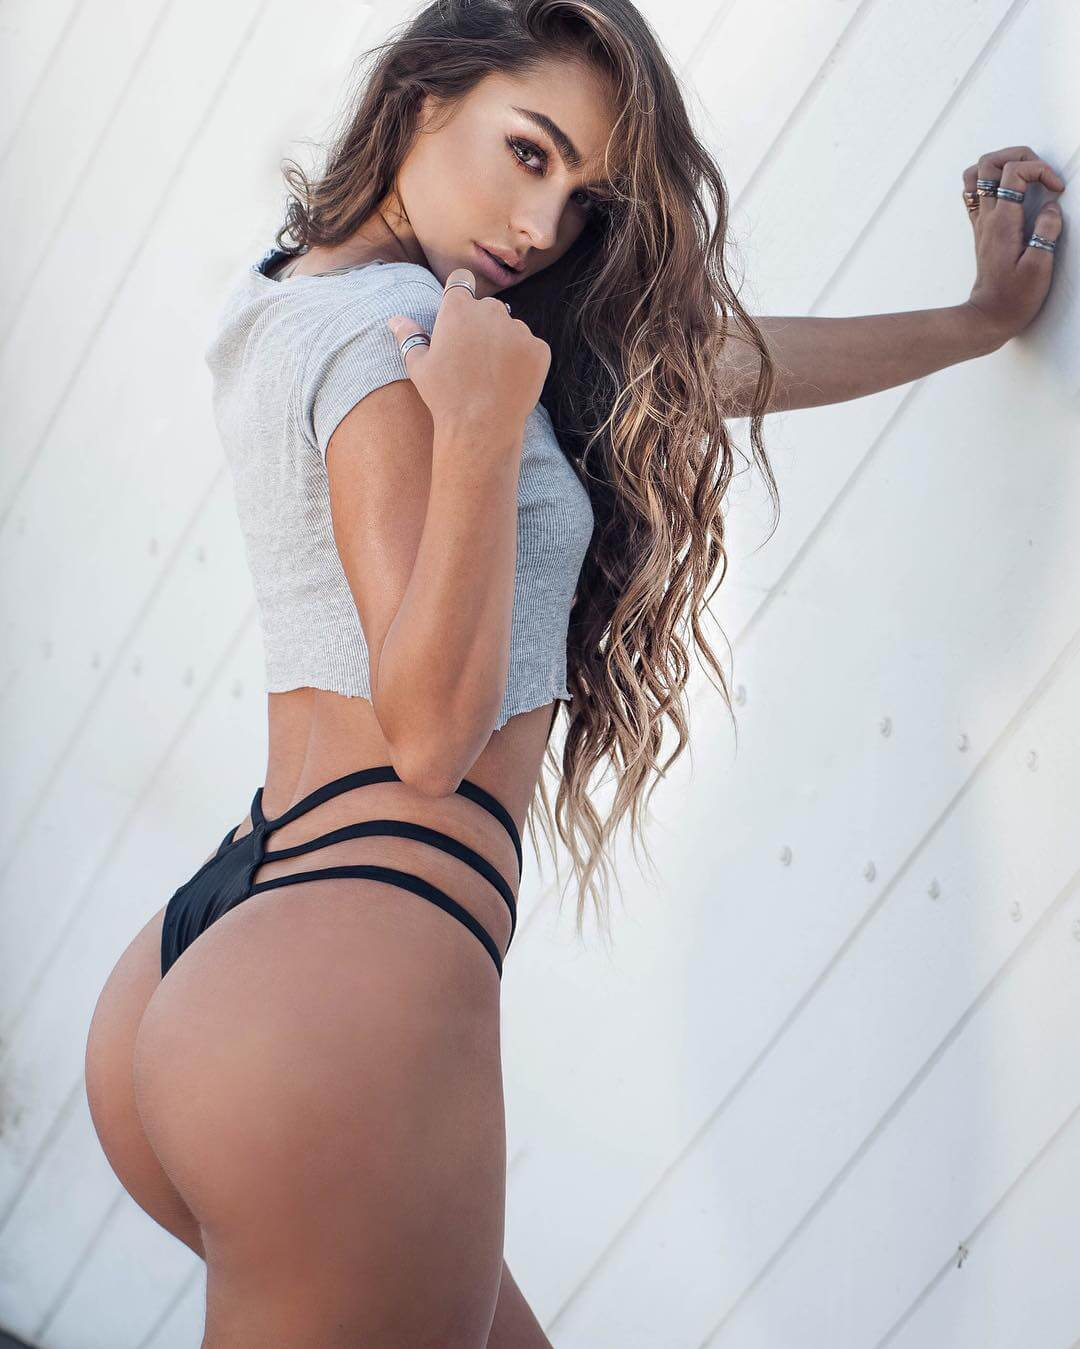 Sommer Ray hot butts pics